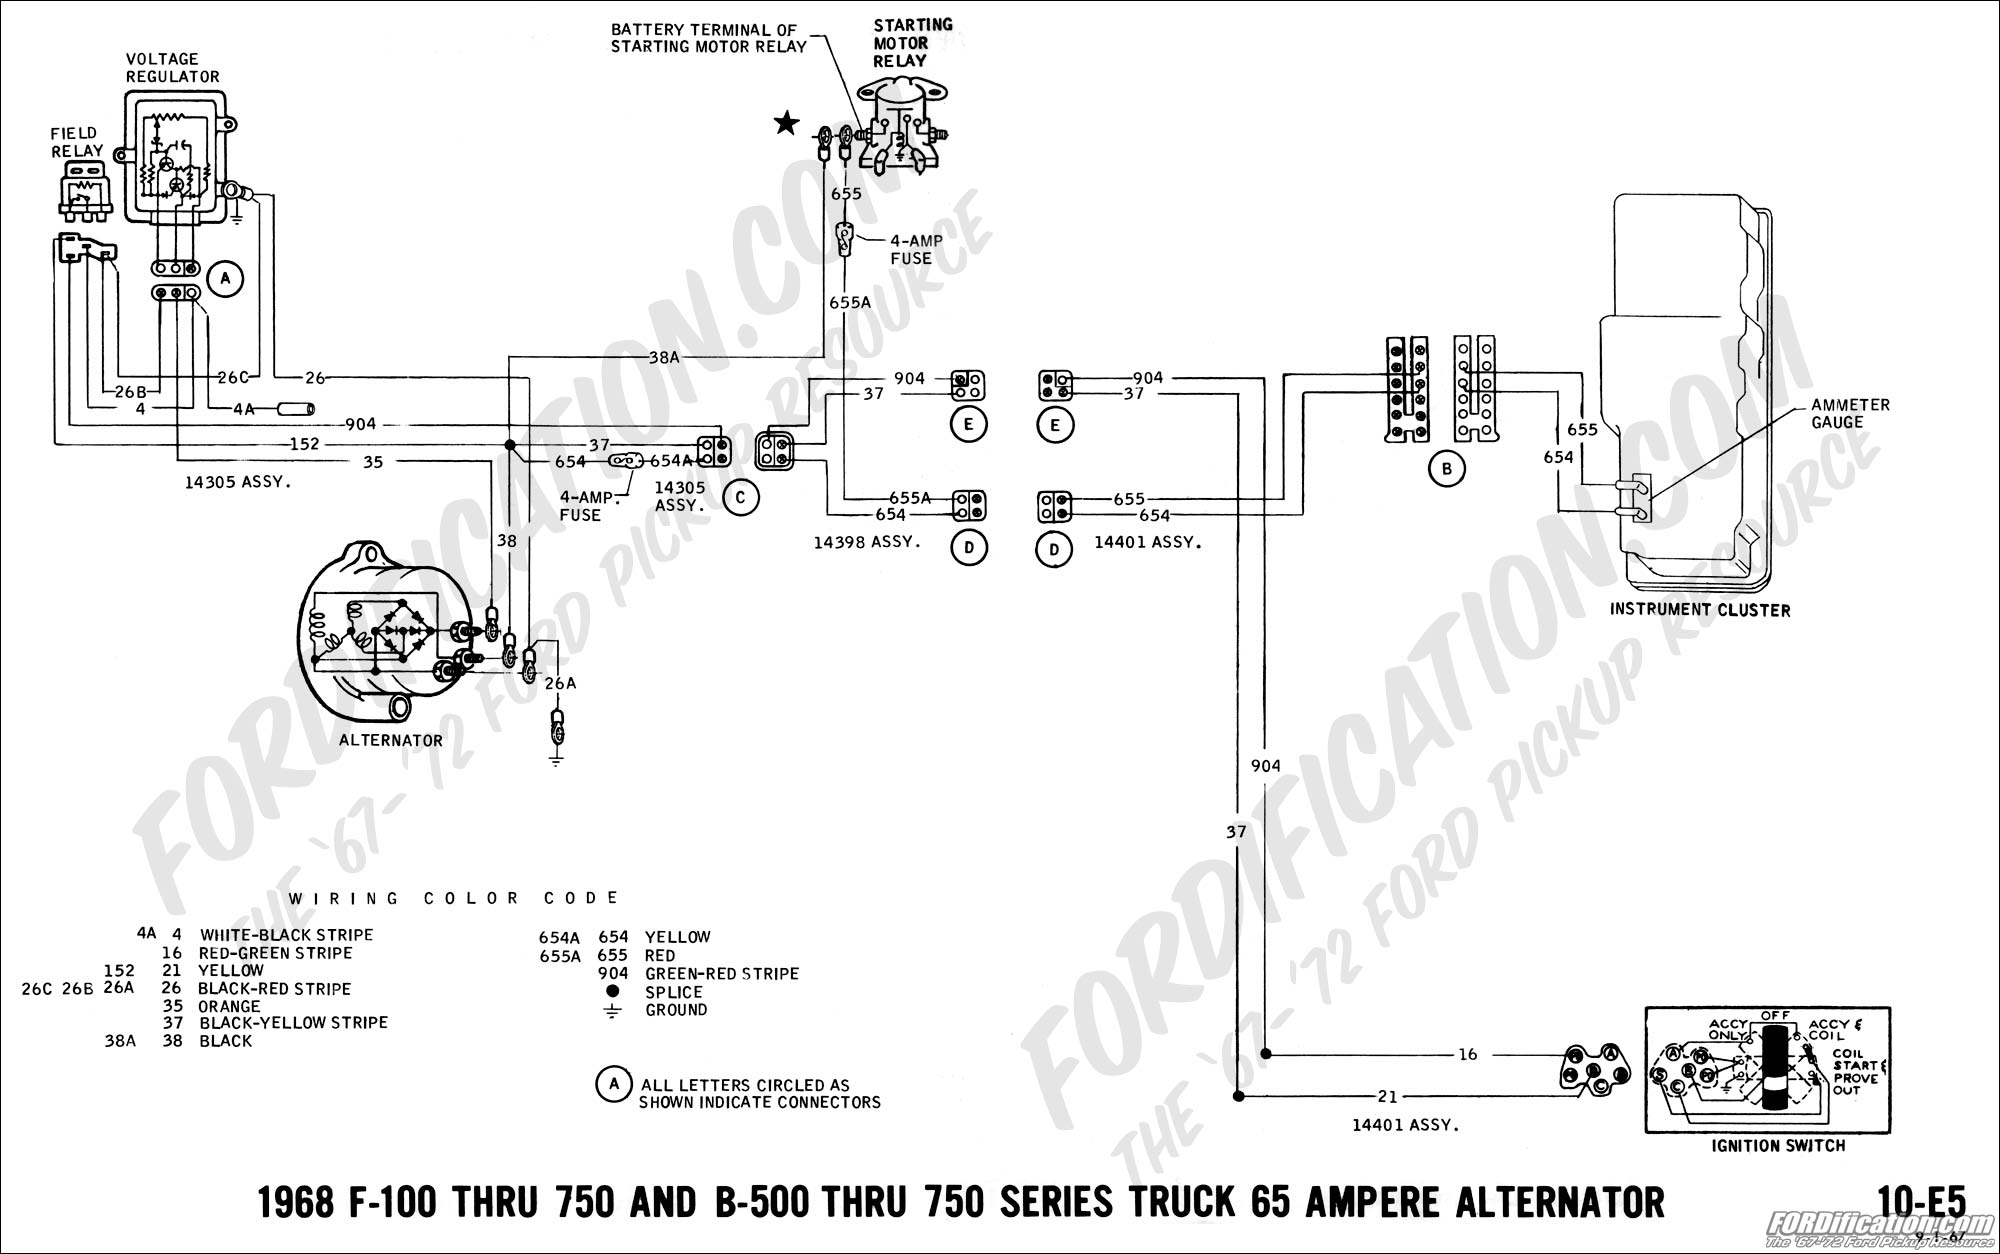 68 07 1977 ford f100 alternator wiring diagram wiring diagram and  at bakdesigns.co